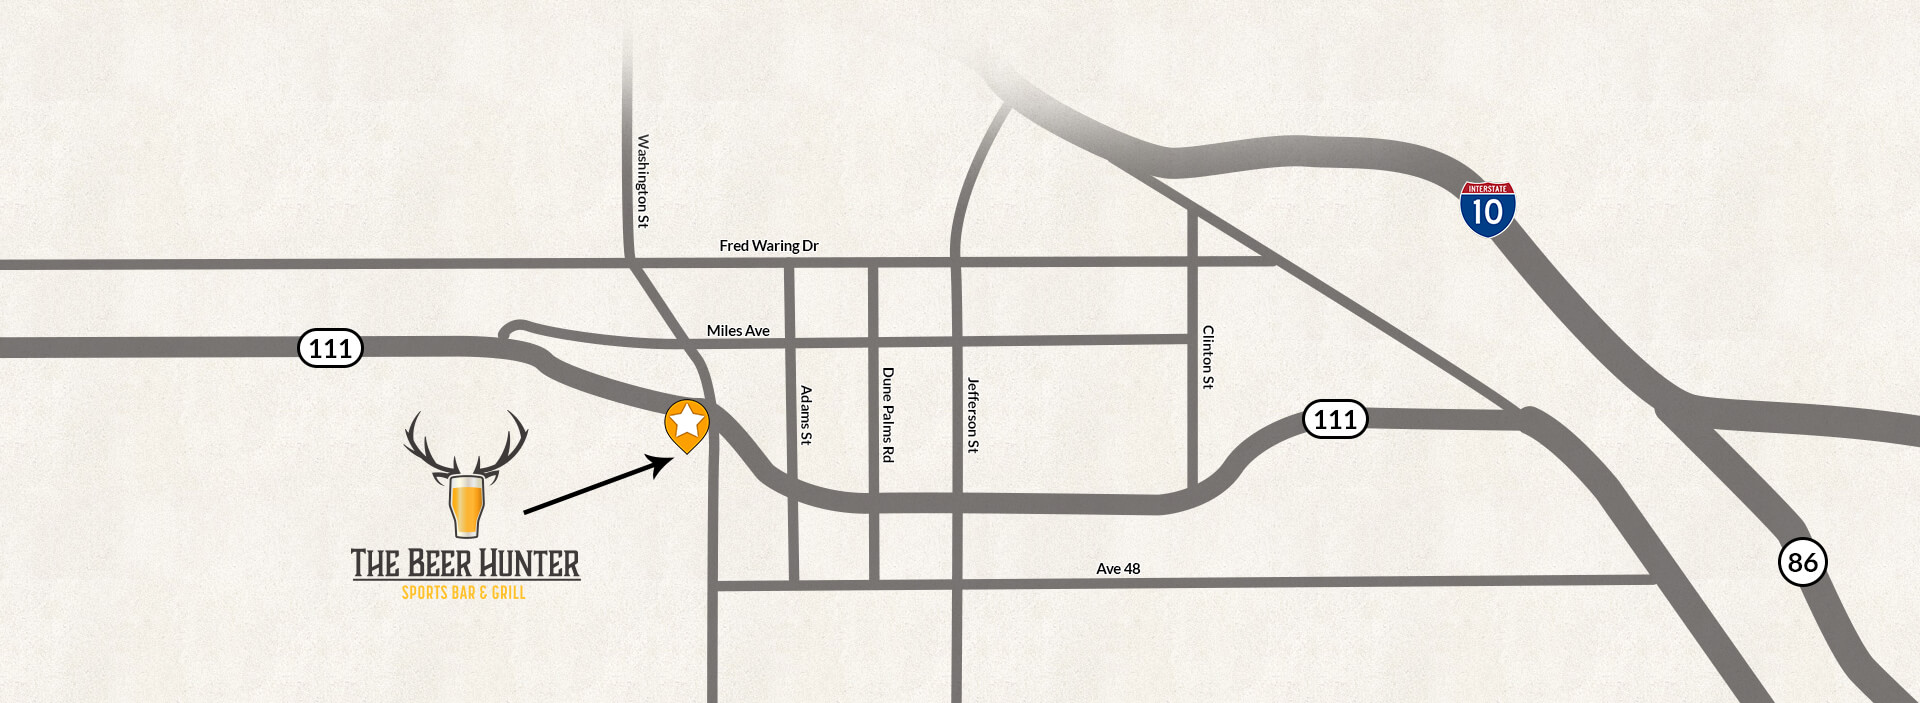 map of the beer hunter's location